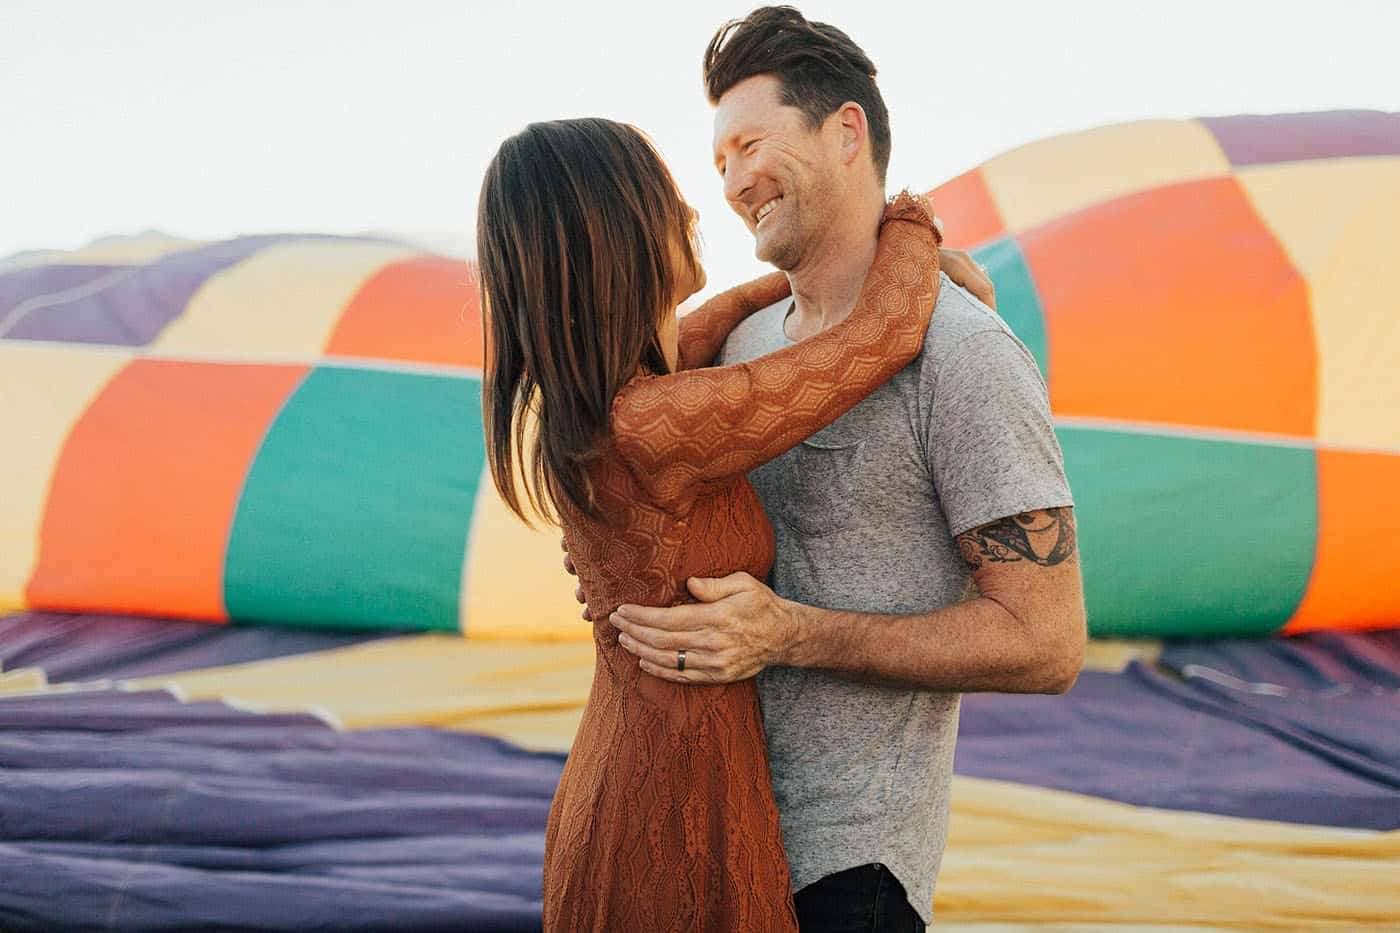 Memorable Photo Locations - tattooed couple hugging at a hot air balloon festival